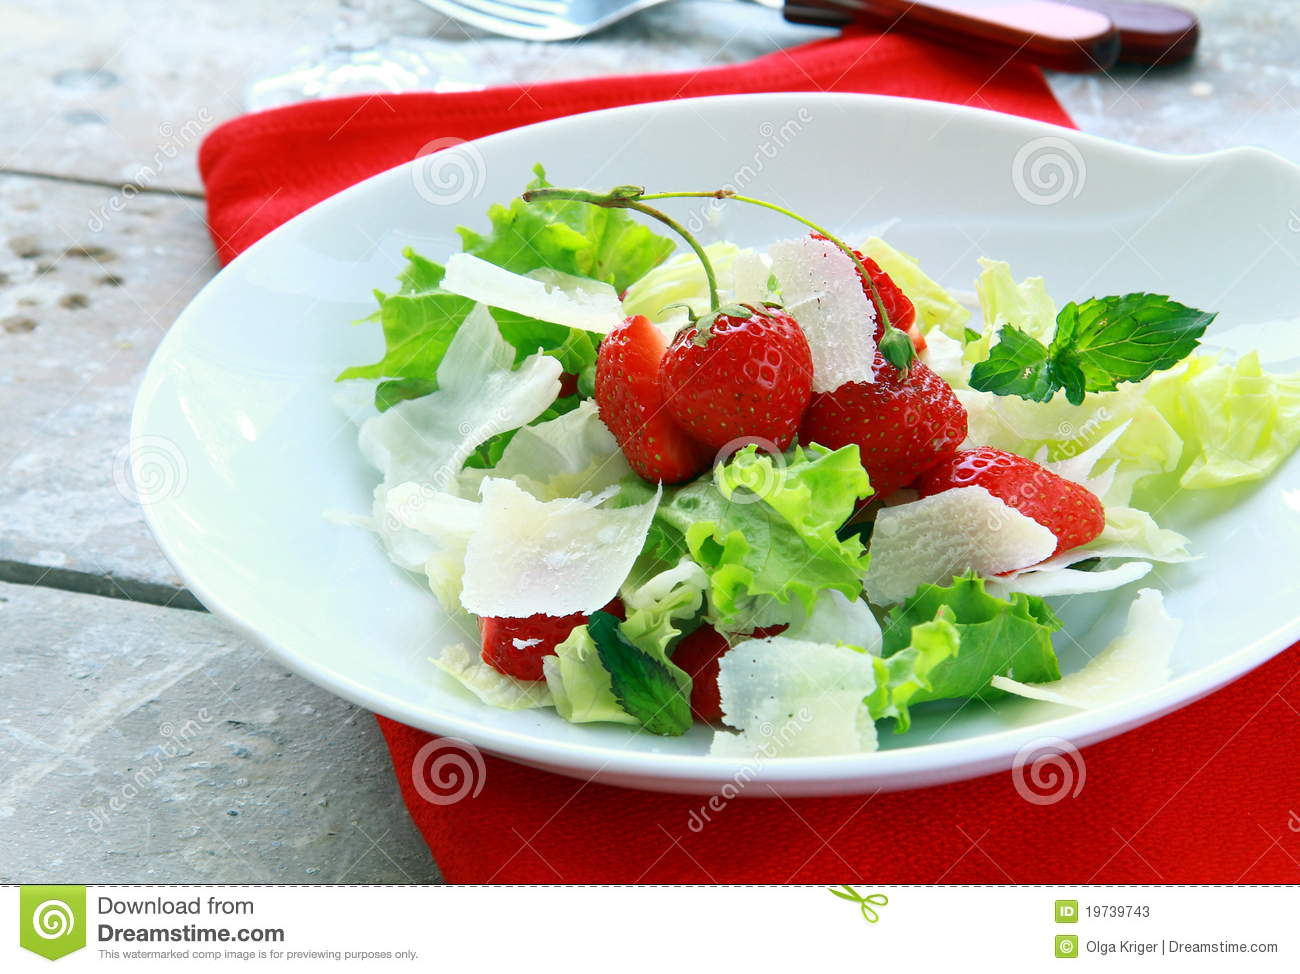 Stock Photos: Summer salad with strawberries, cheese